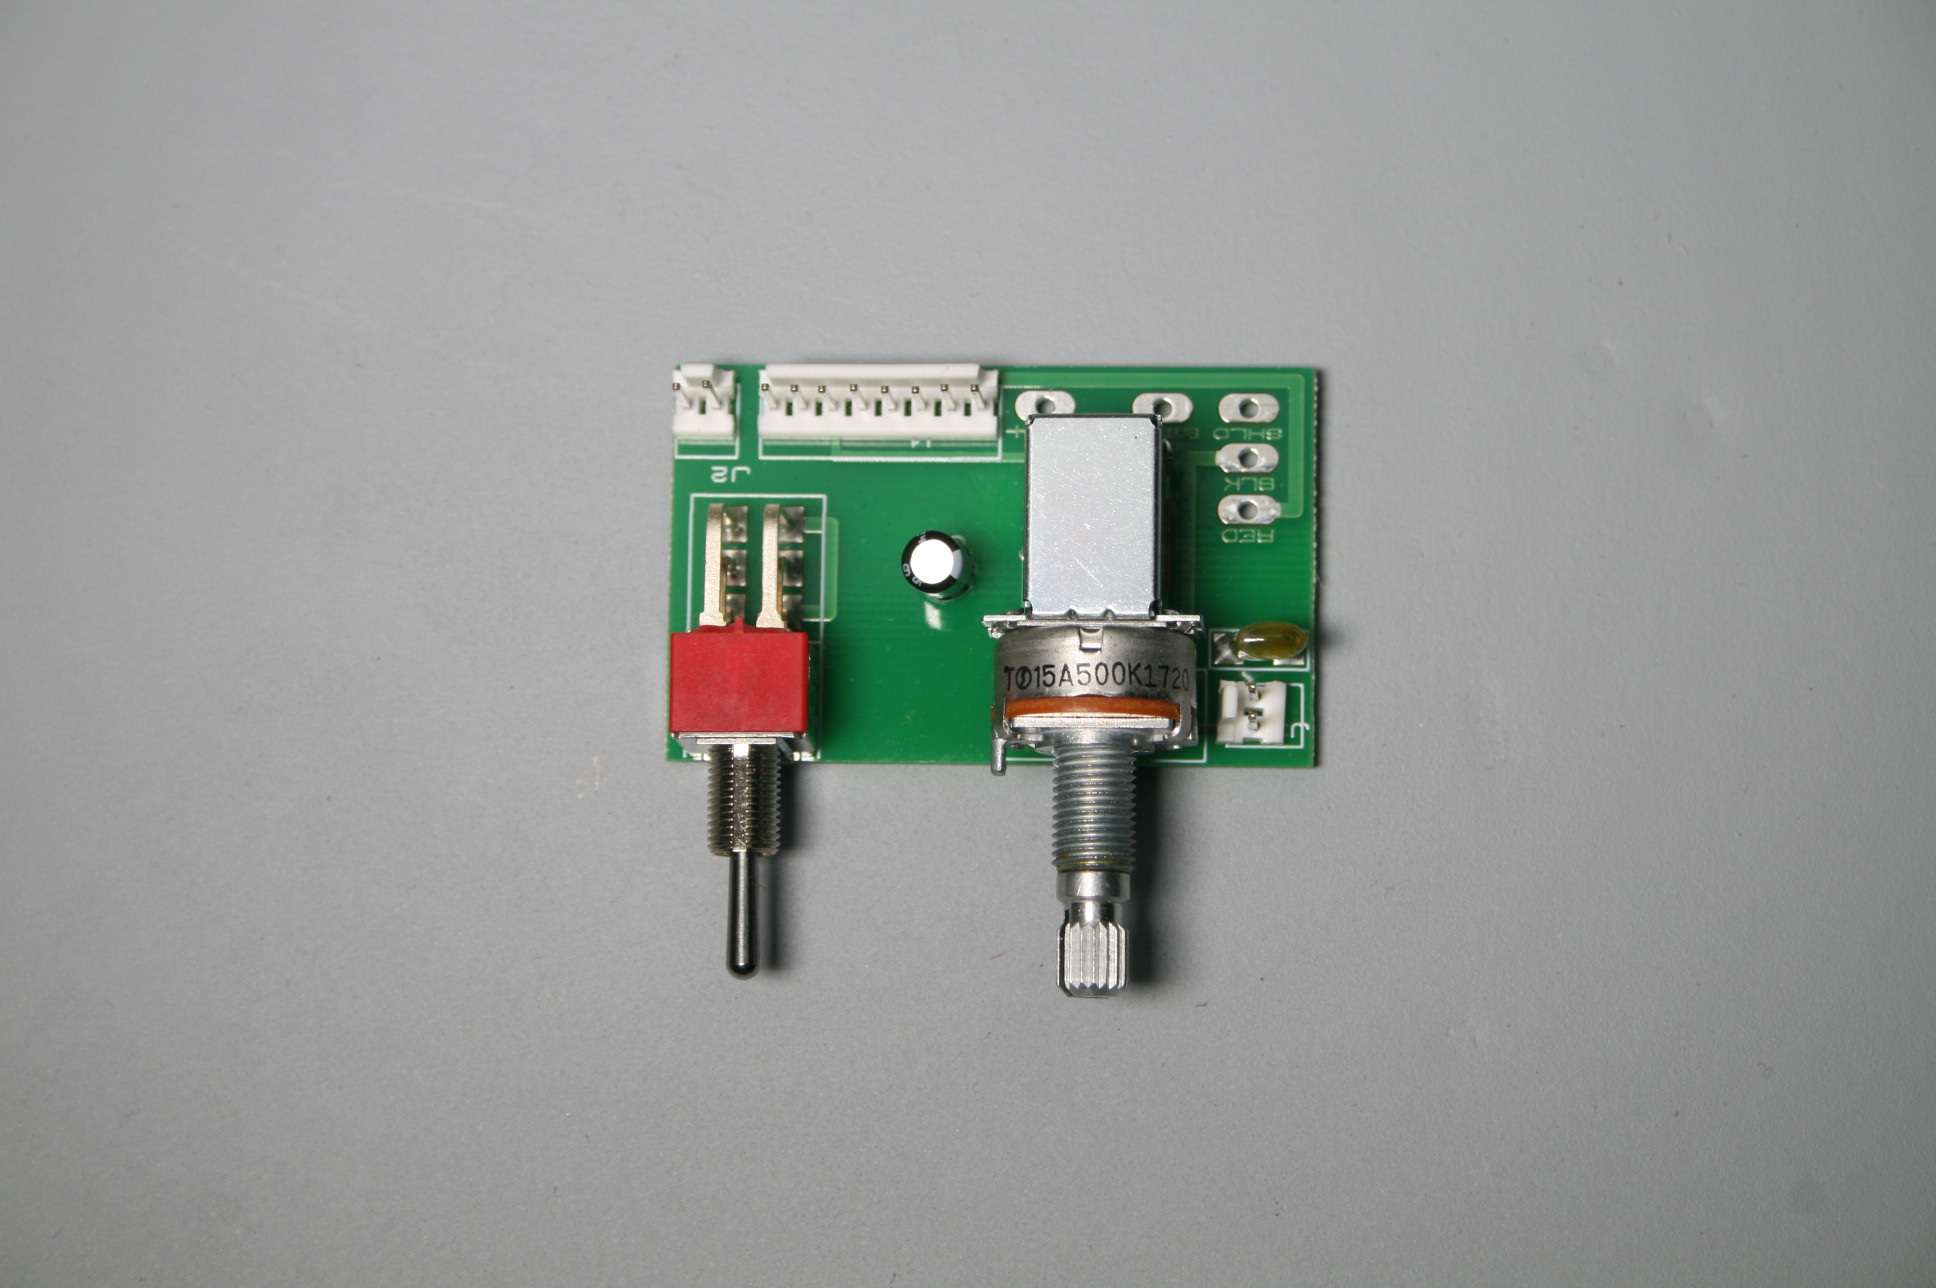 hight resolution of aux js board in a semi installation kit for ibanez js guitar models this control layout is used for the new ibanez js2480 guitars that